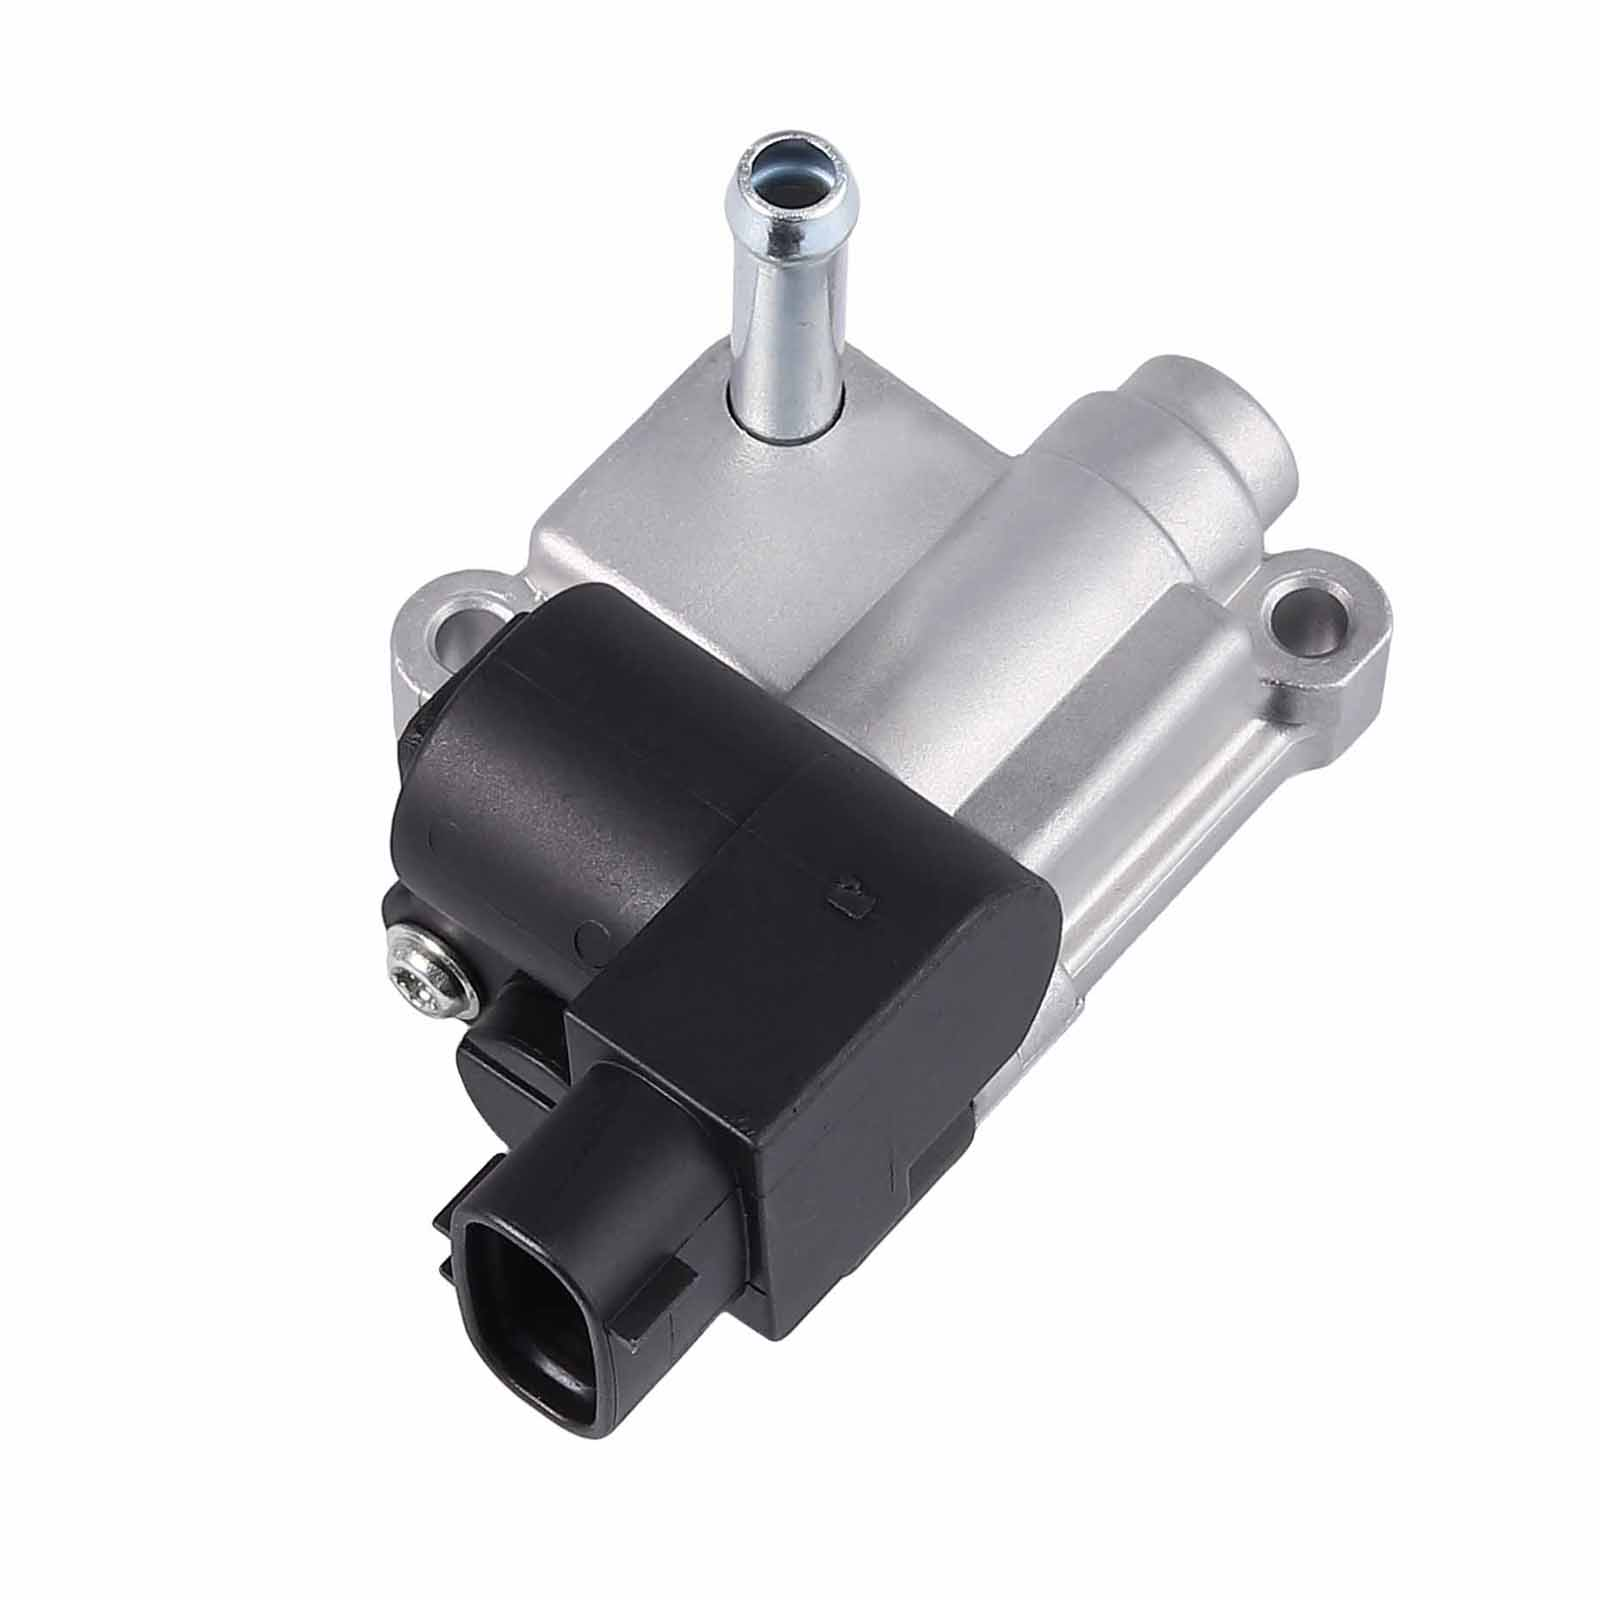 16022-P8A-A01 Idle Air Control Valve For Acura TL CL MDX